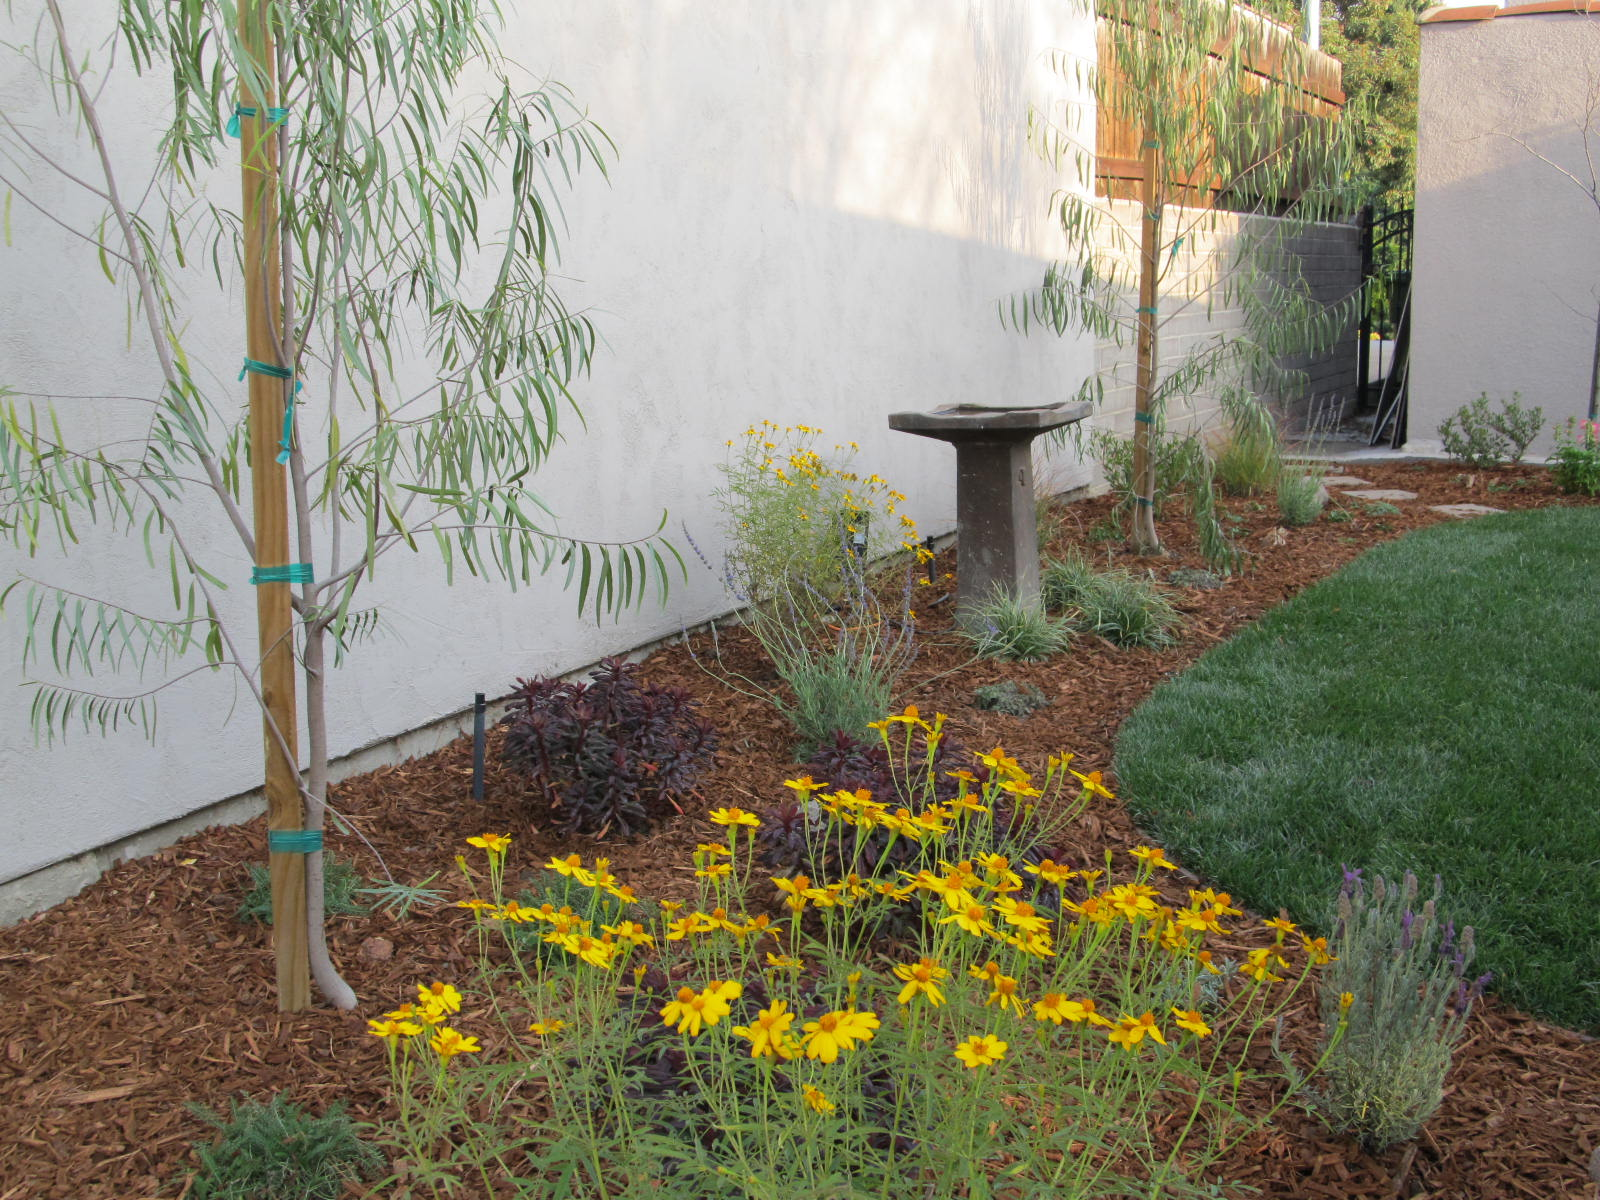 Fairy Yardmother Landscape Design: Backyard Makeover on a ... on Patio Makeovers On A Budget id=87158